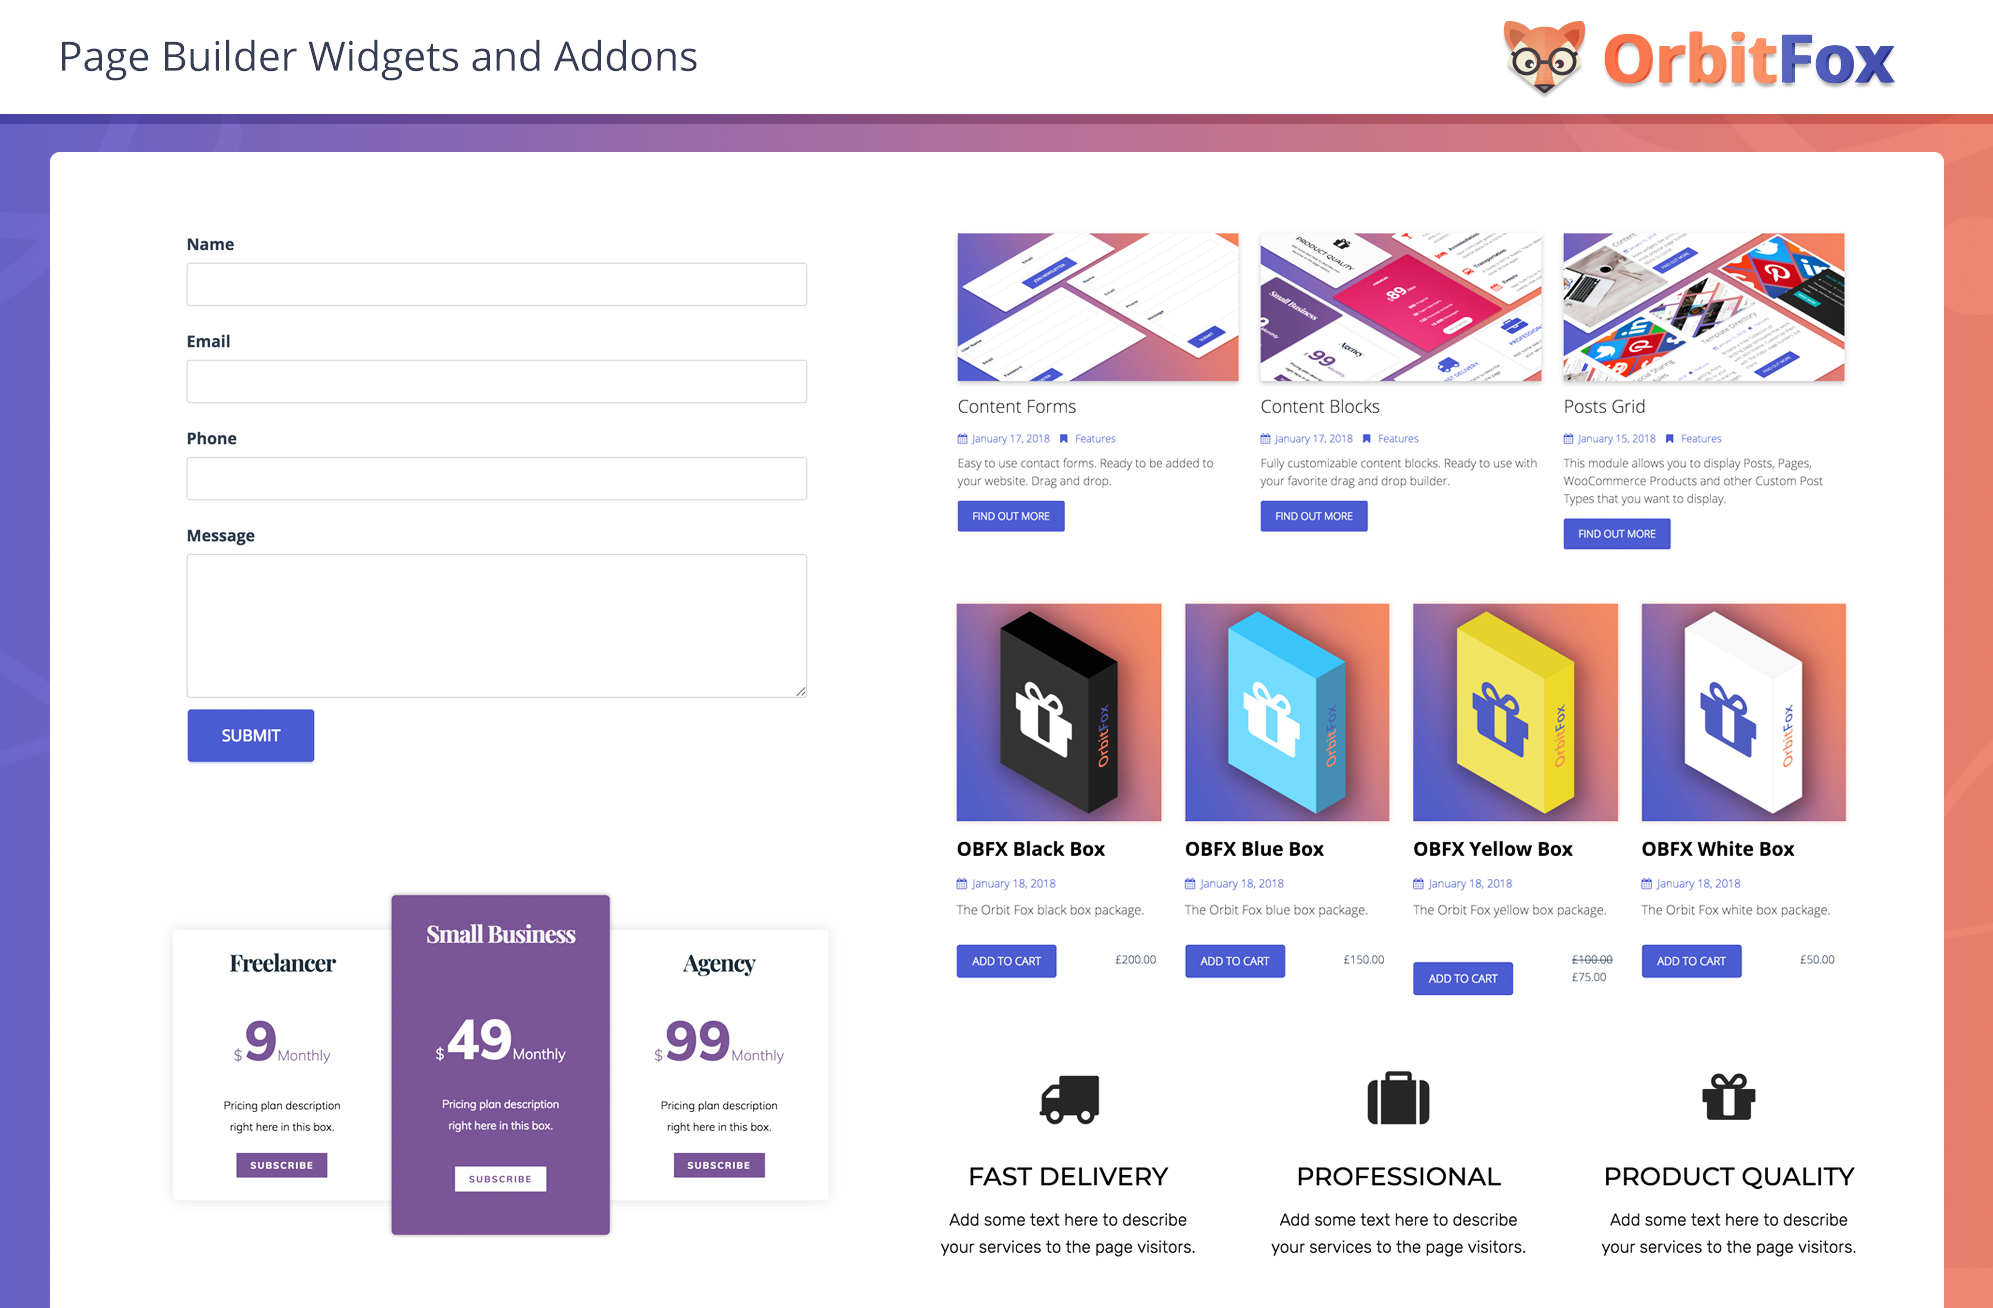 Page Builder Widgets and Addons